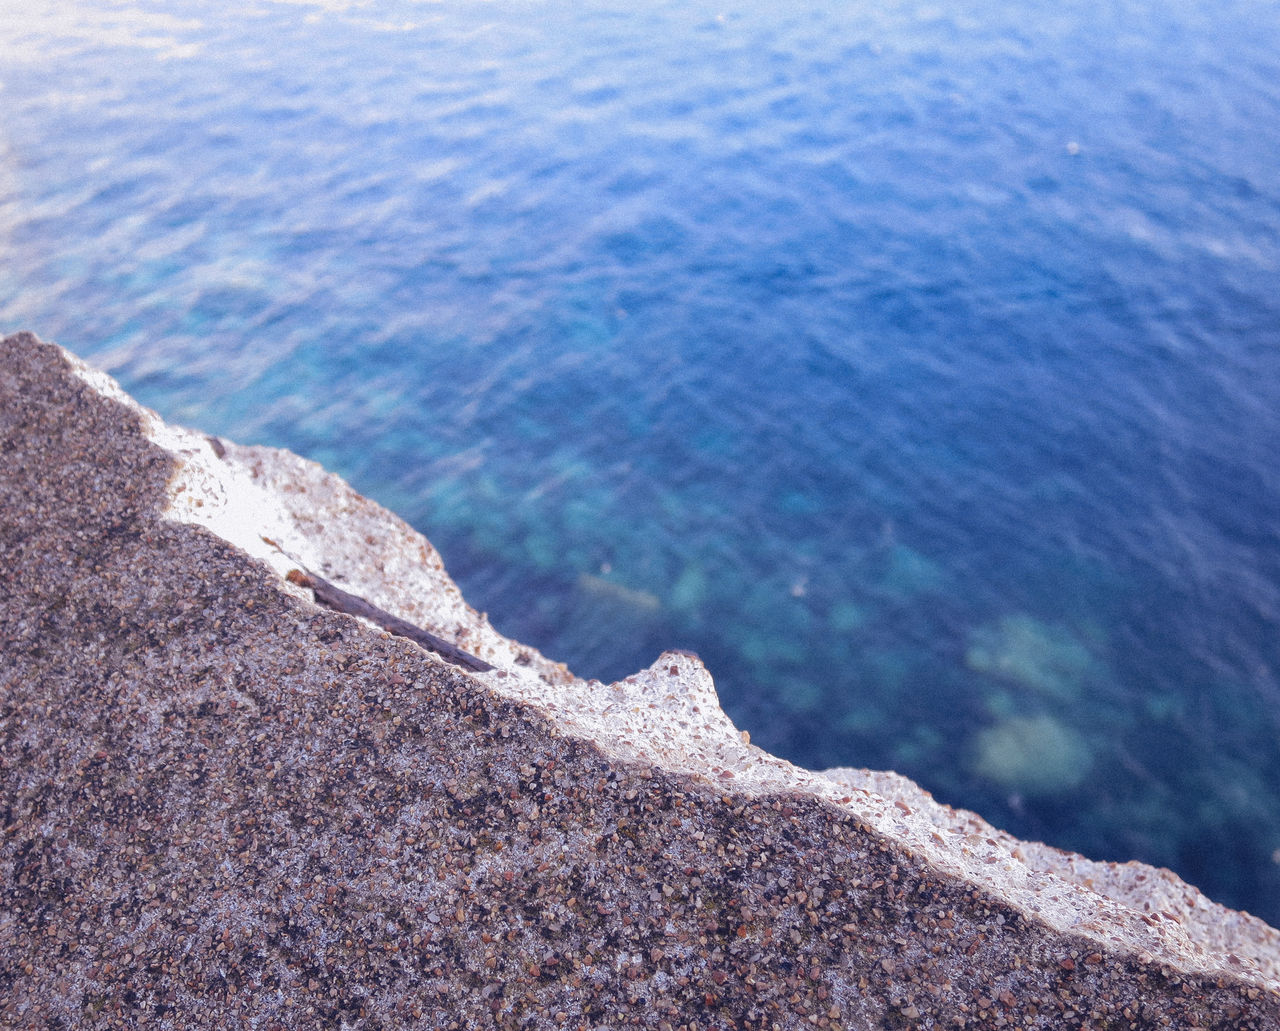 water, sea, nature, day, beauty in nature, outdoors, no people, high angle view, tranquility, tranquil scene, textured, scenics, close-up